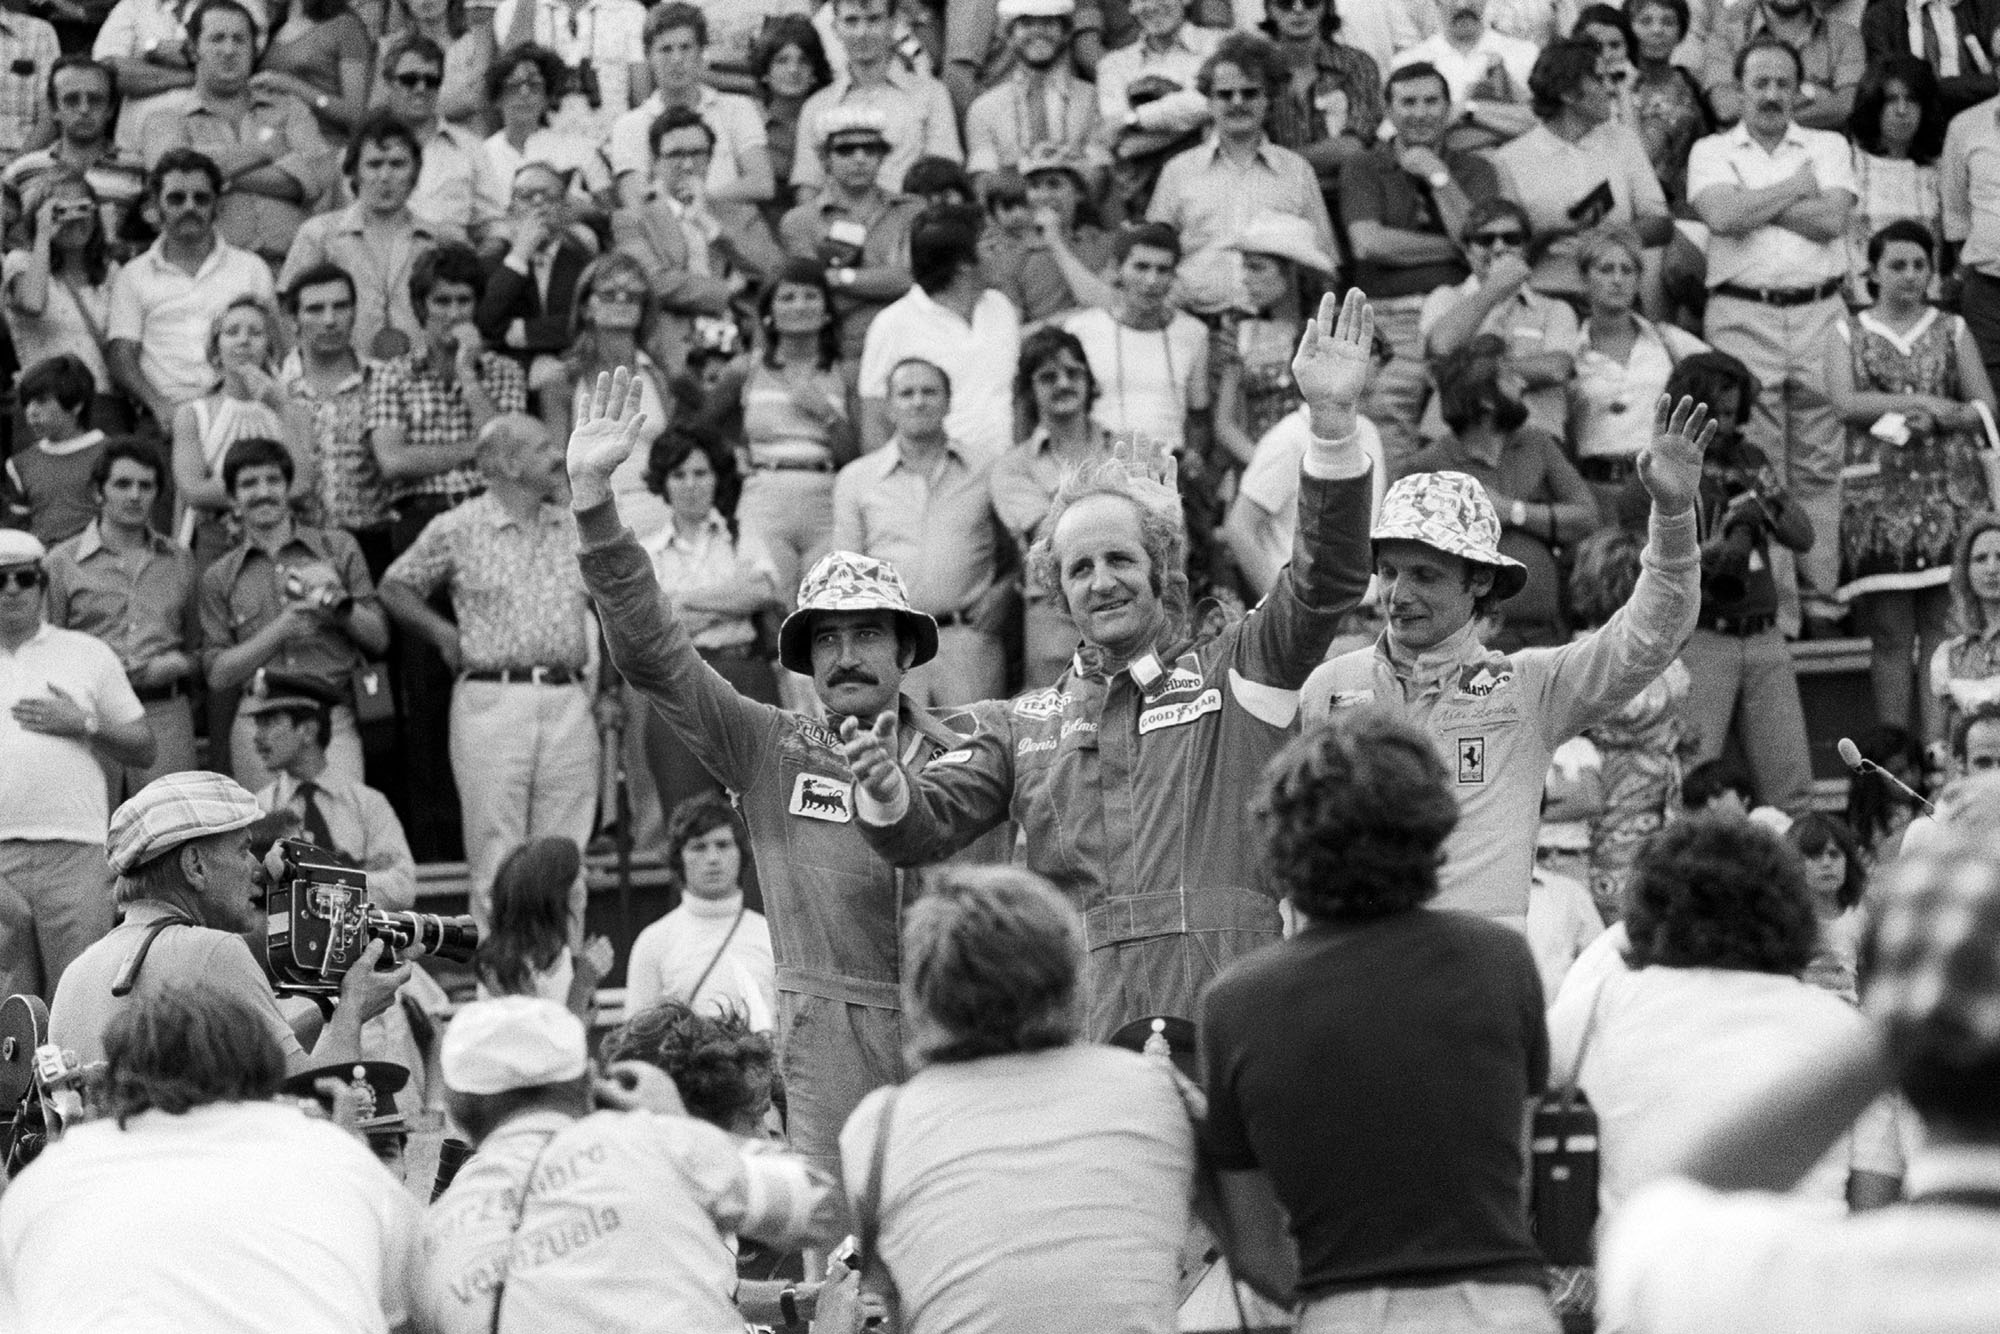 Denny Hulme waves from the podium after winning the 1974 Argentine Grand Prix.